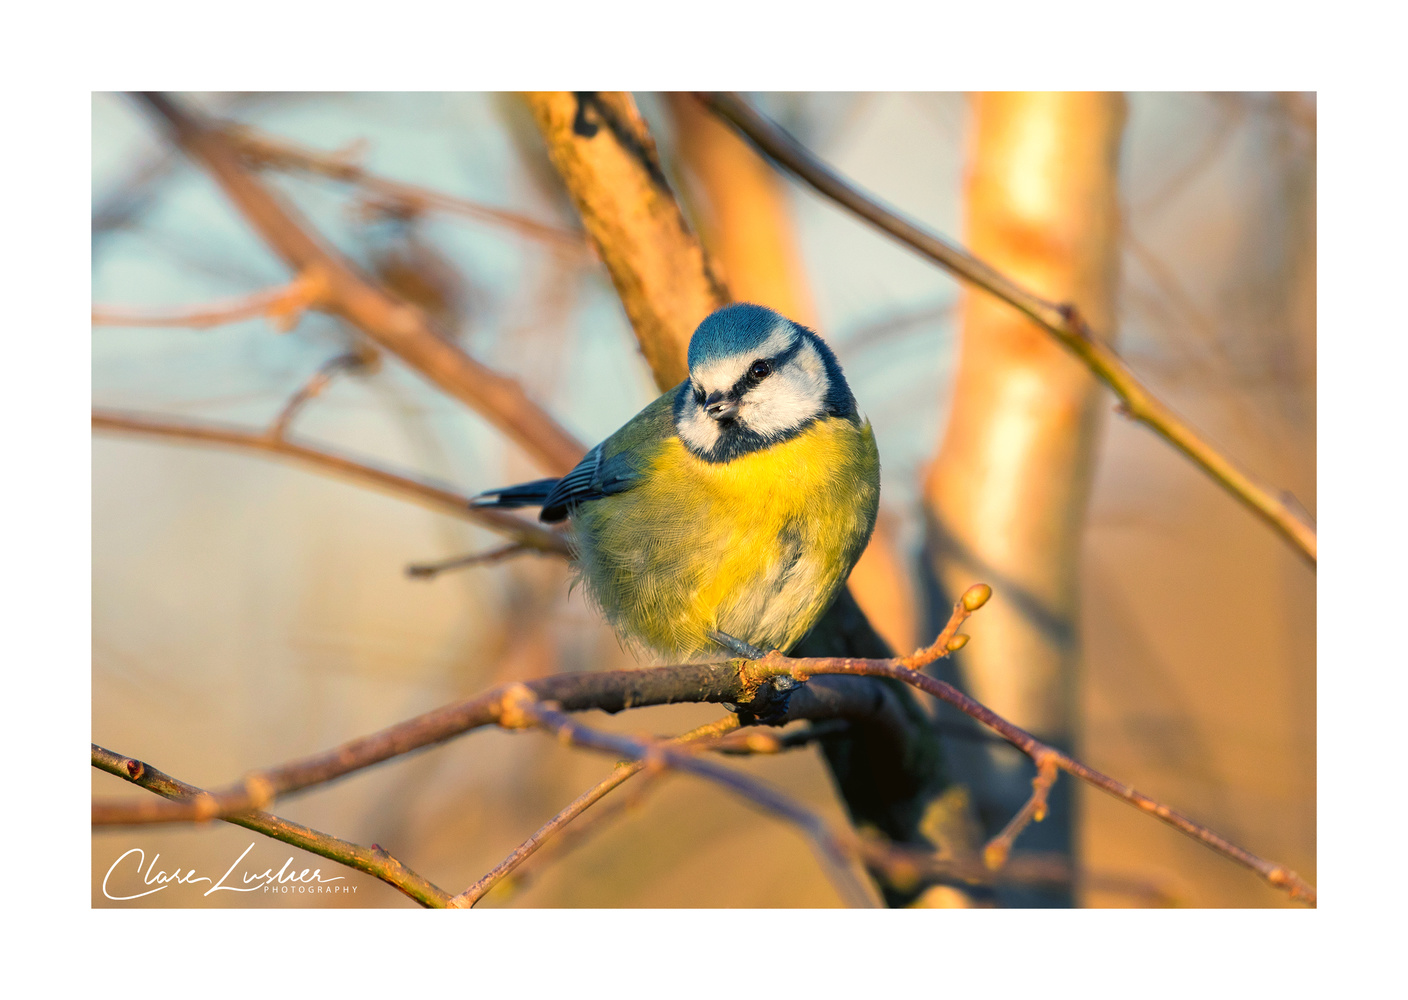 Blue tit by Clare Lusher